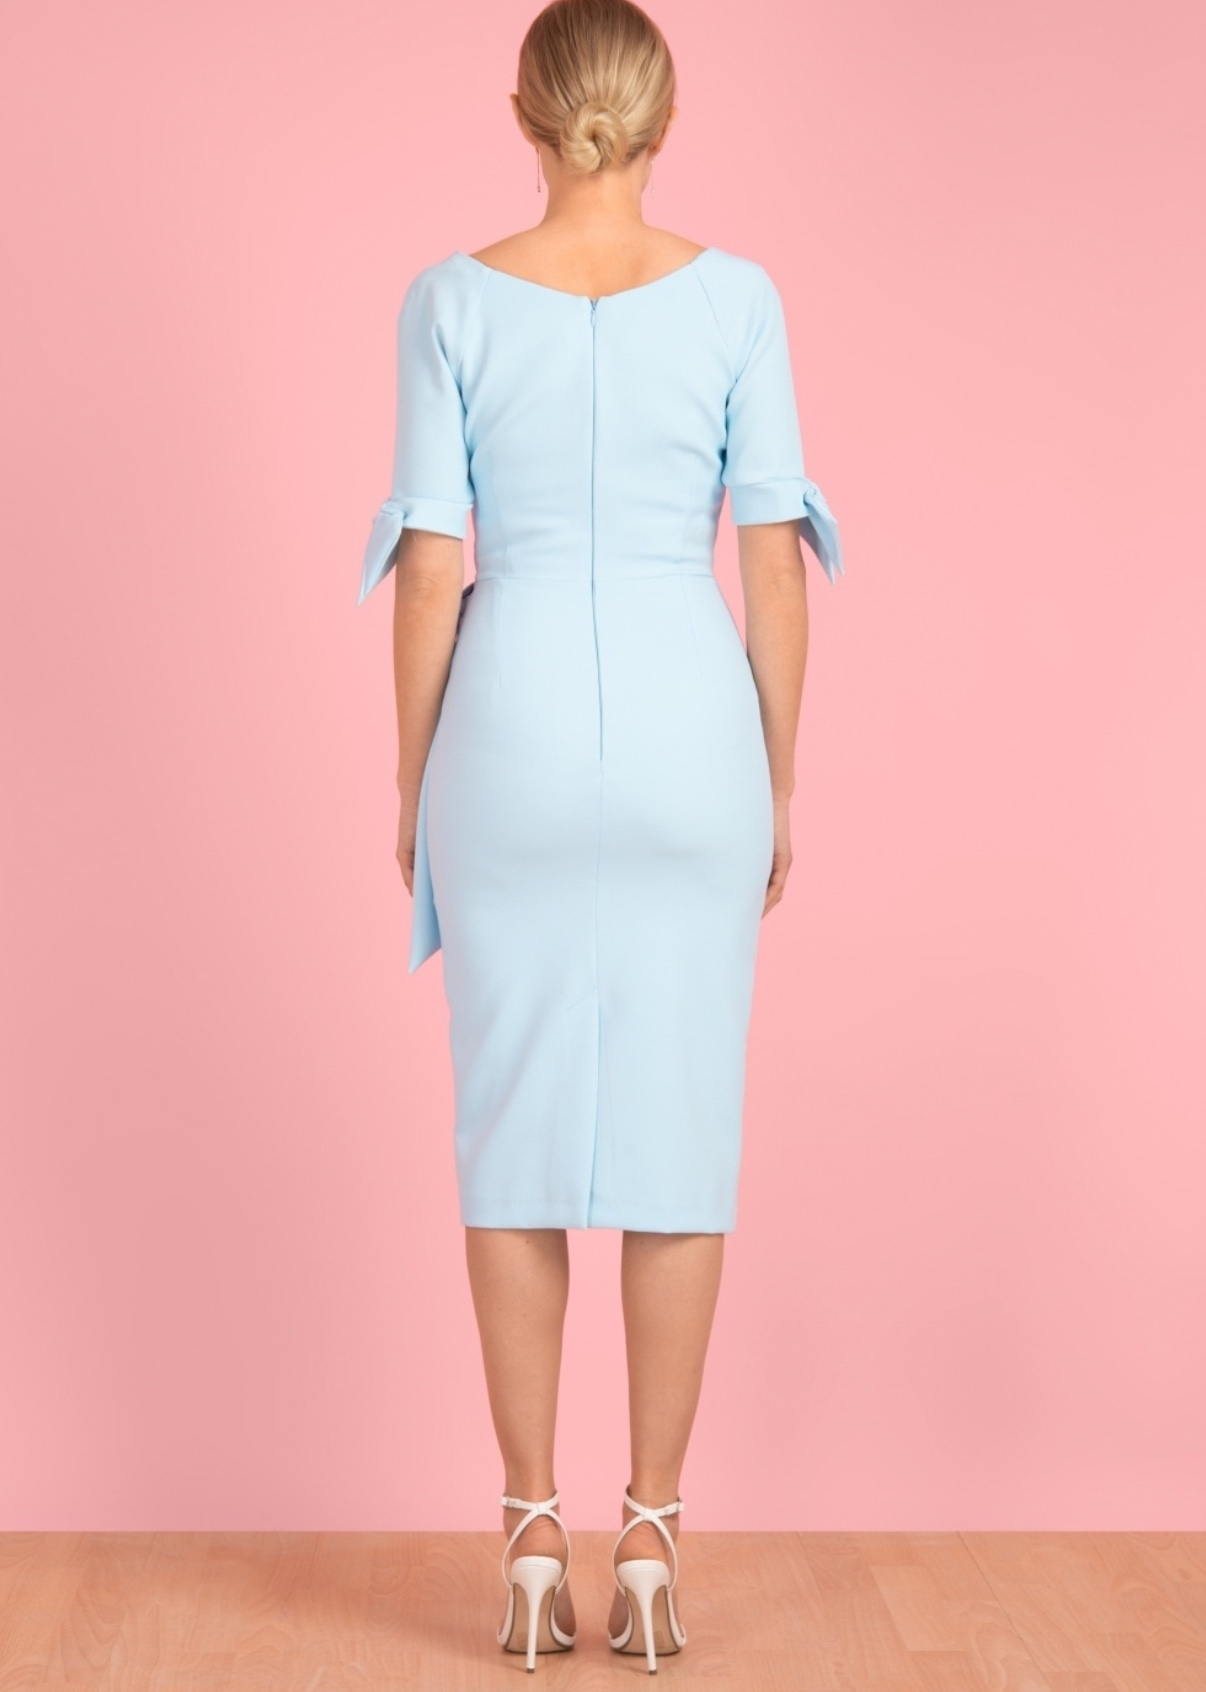 Hourglass Dress with Bows on Sleeves in Pale Blue